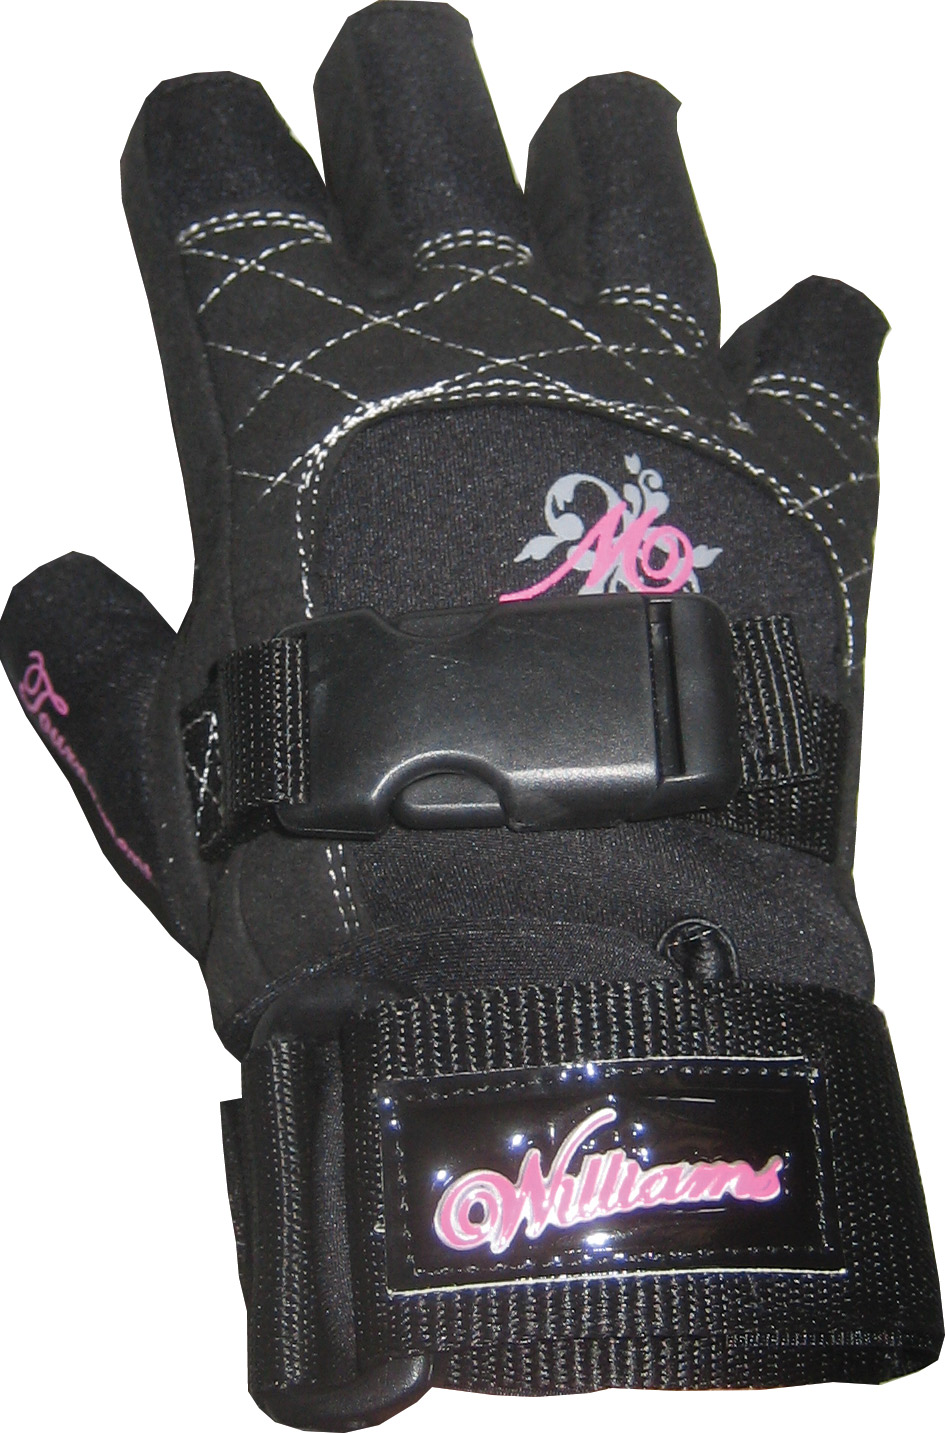 GLOVES-LADIES.jpg